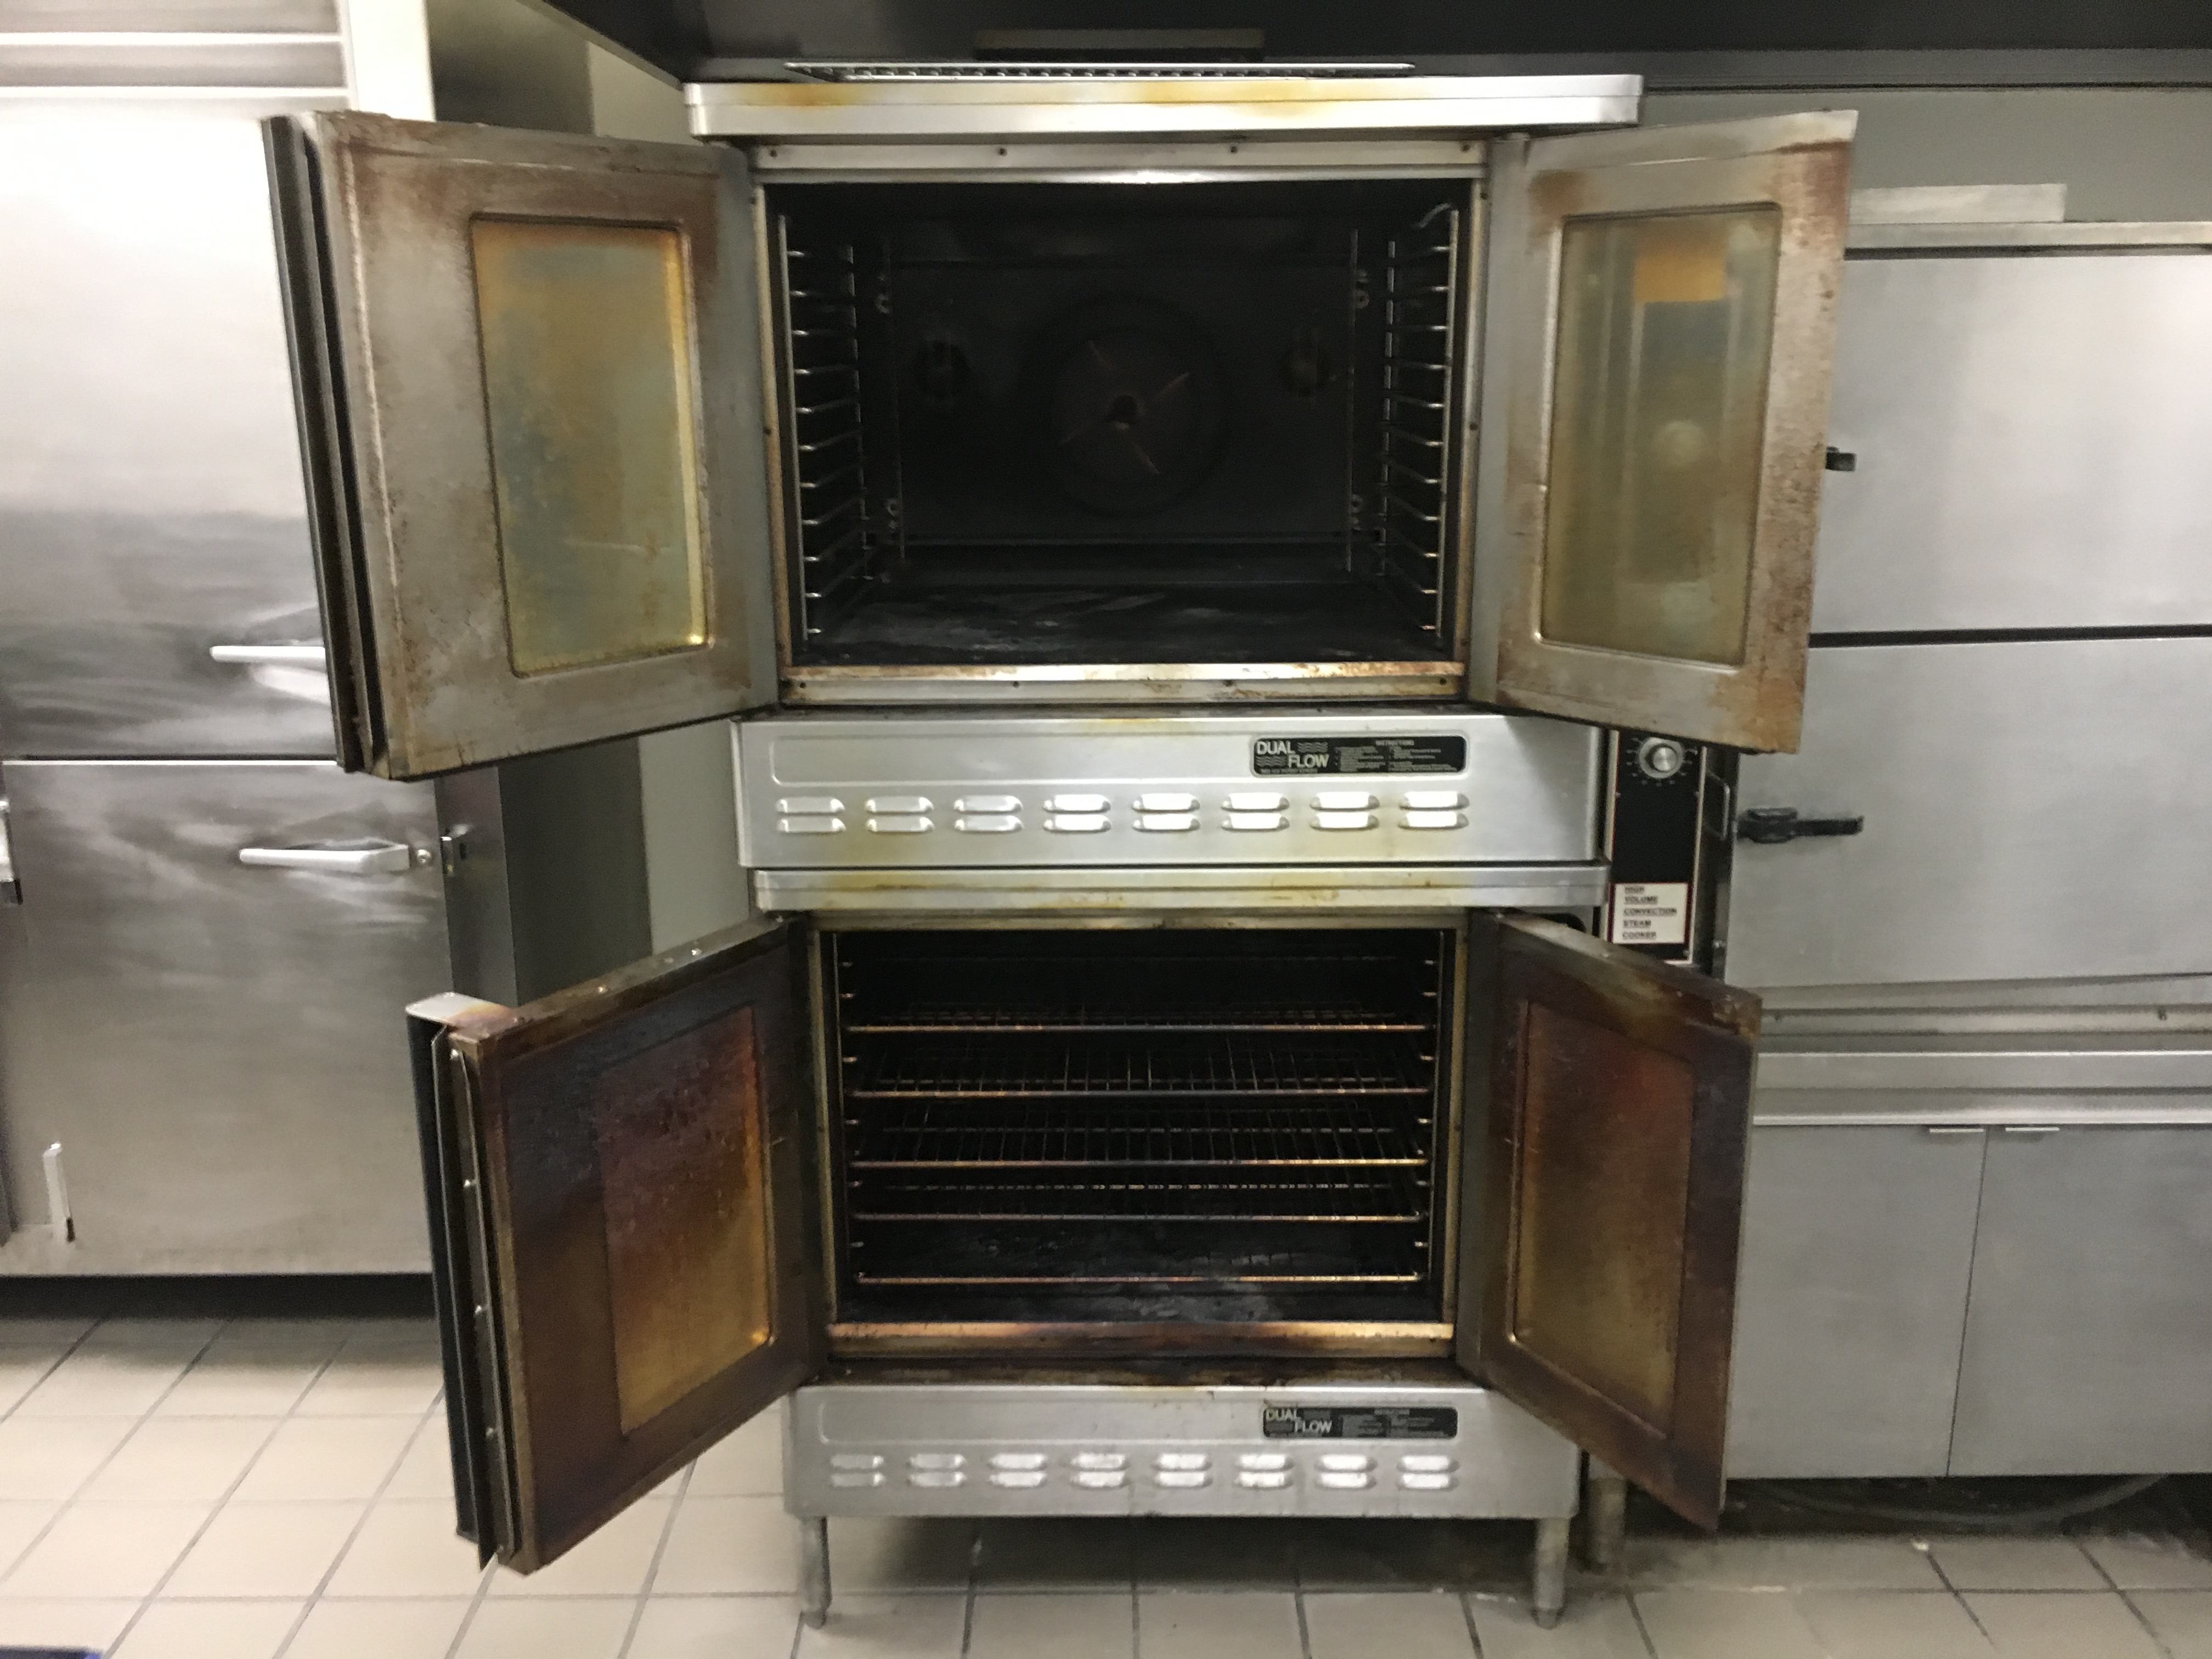 Commercial Oven Cleaning Chicago Before